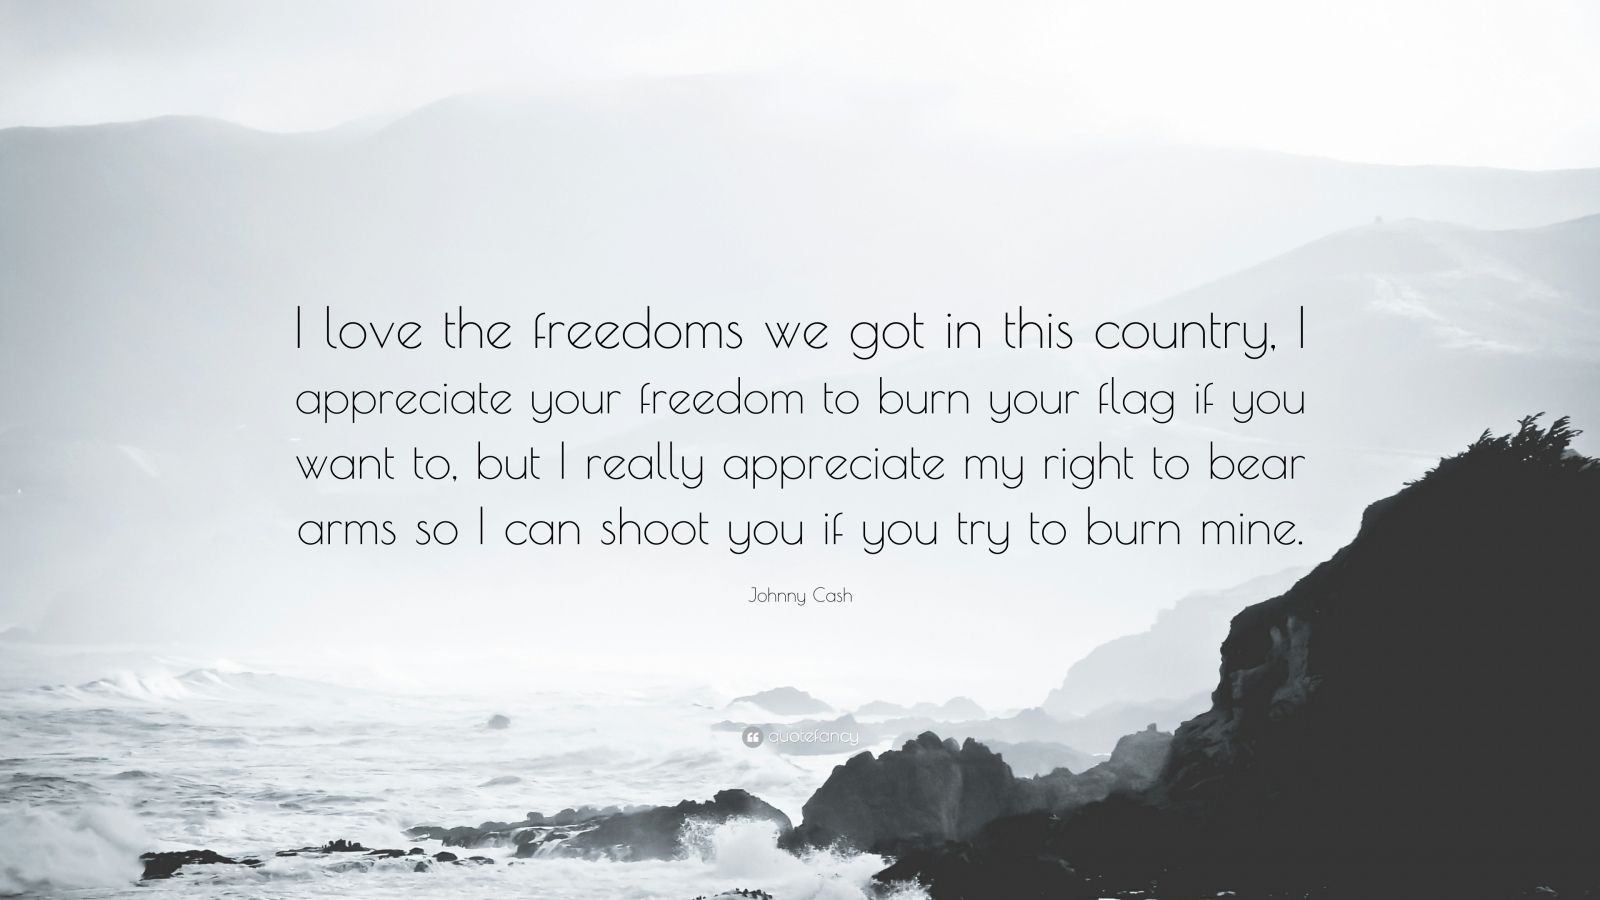 "Johnny Cash Quote: ""I love the freedoms we got in this country, I appreciate your freedom to burn your flag if you want to, but I really appreciate my right to bear arms so I can shoot you if you try to burn mine."""